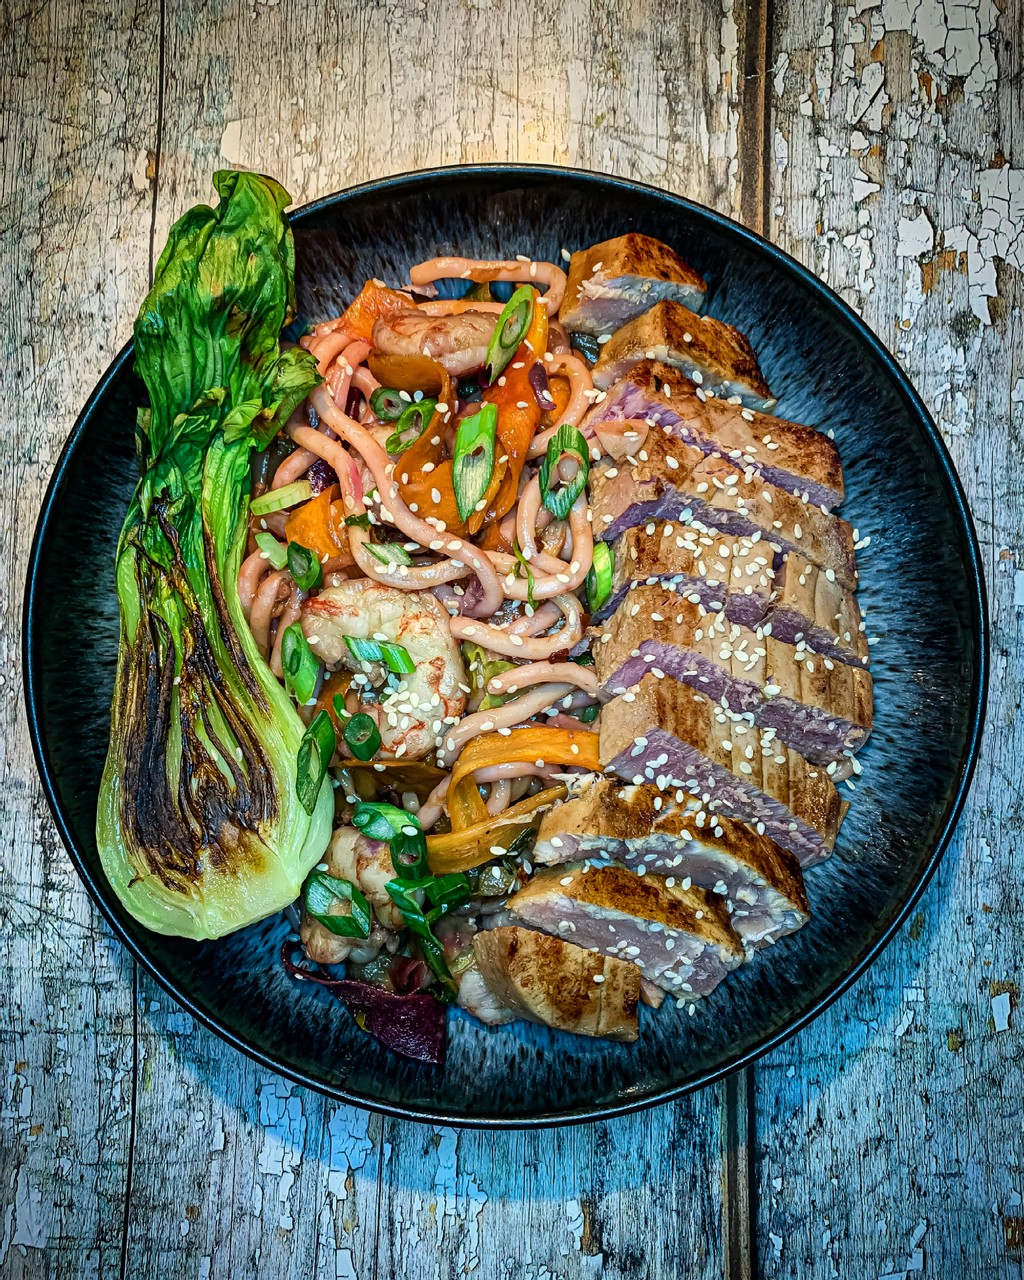 Seared Tuna Steaks with Udon Noodle Stir Fry